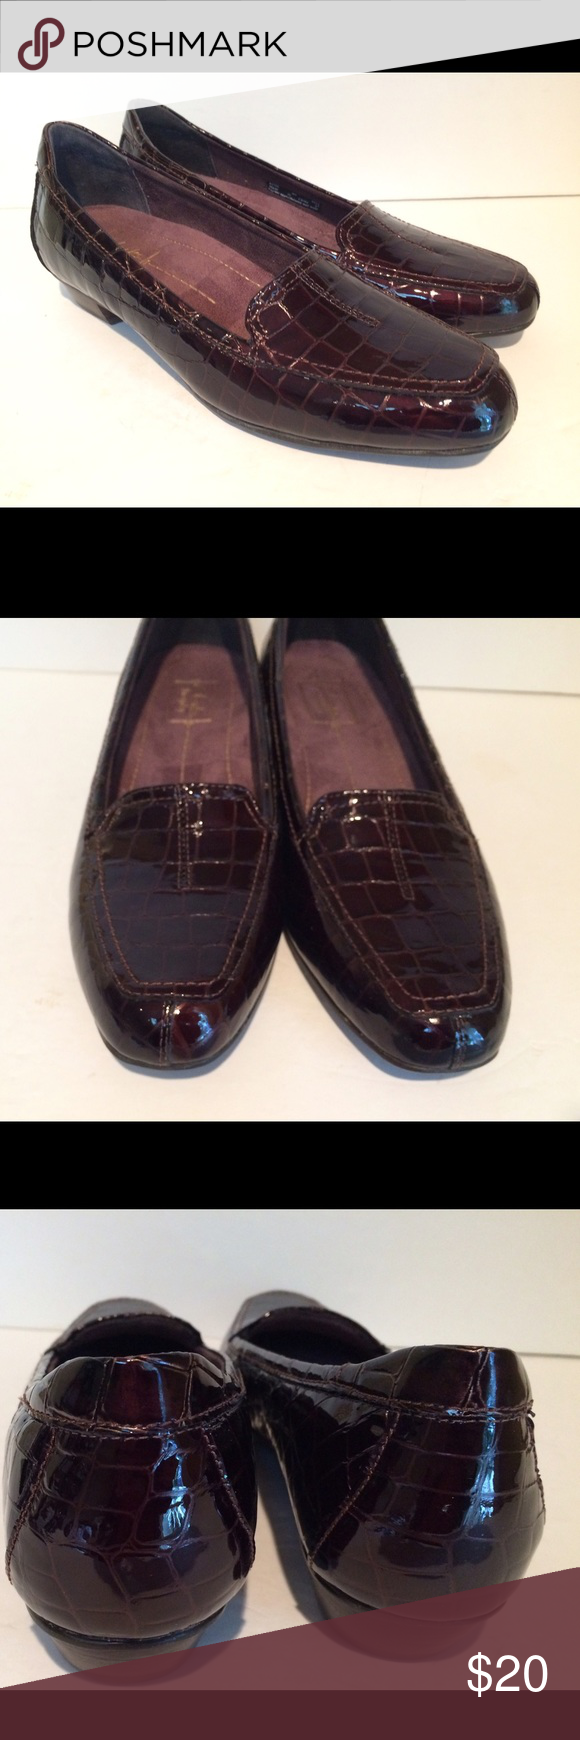 Clarks Everyday Faux Croc Slip On Loafers Clarks Everyday faux croc brown  slip on loafers size 7 narrow. Great condition maybe worn once or twice.